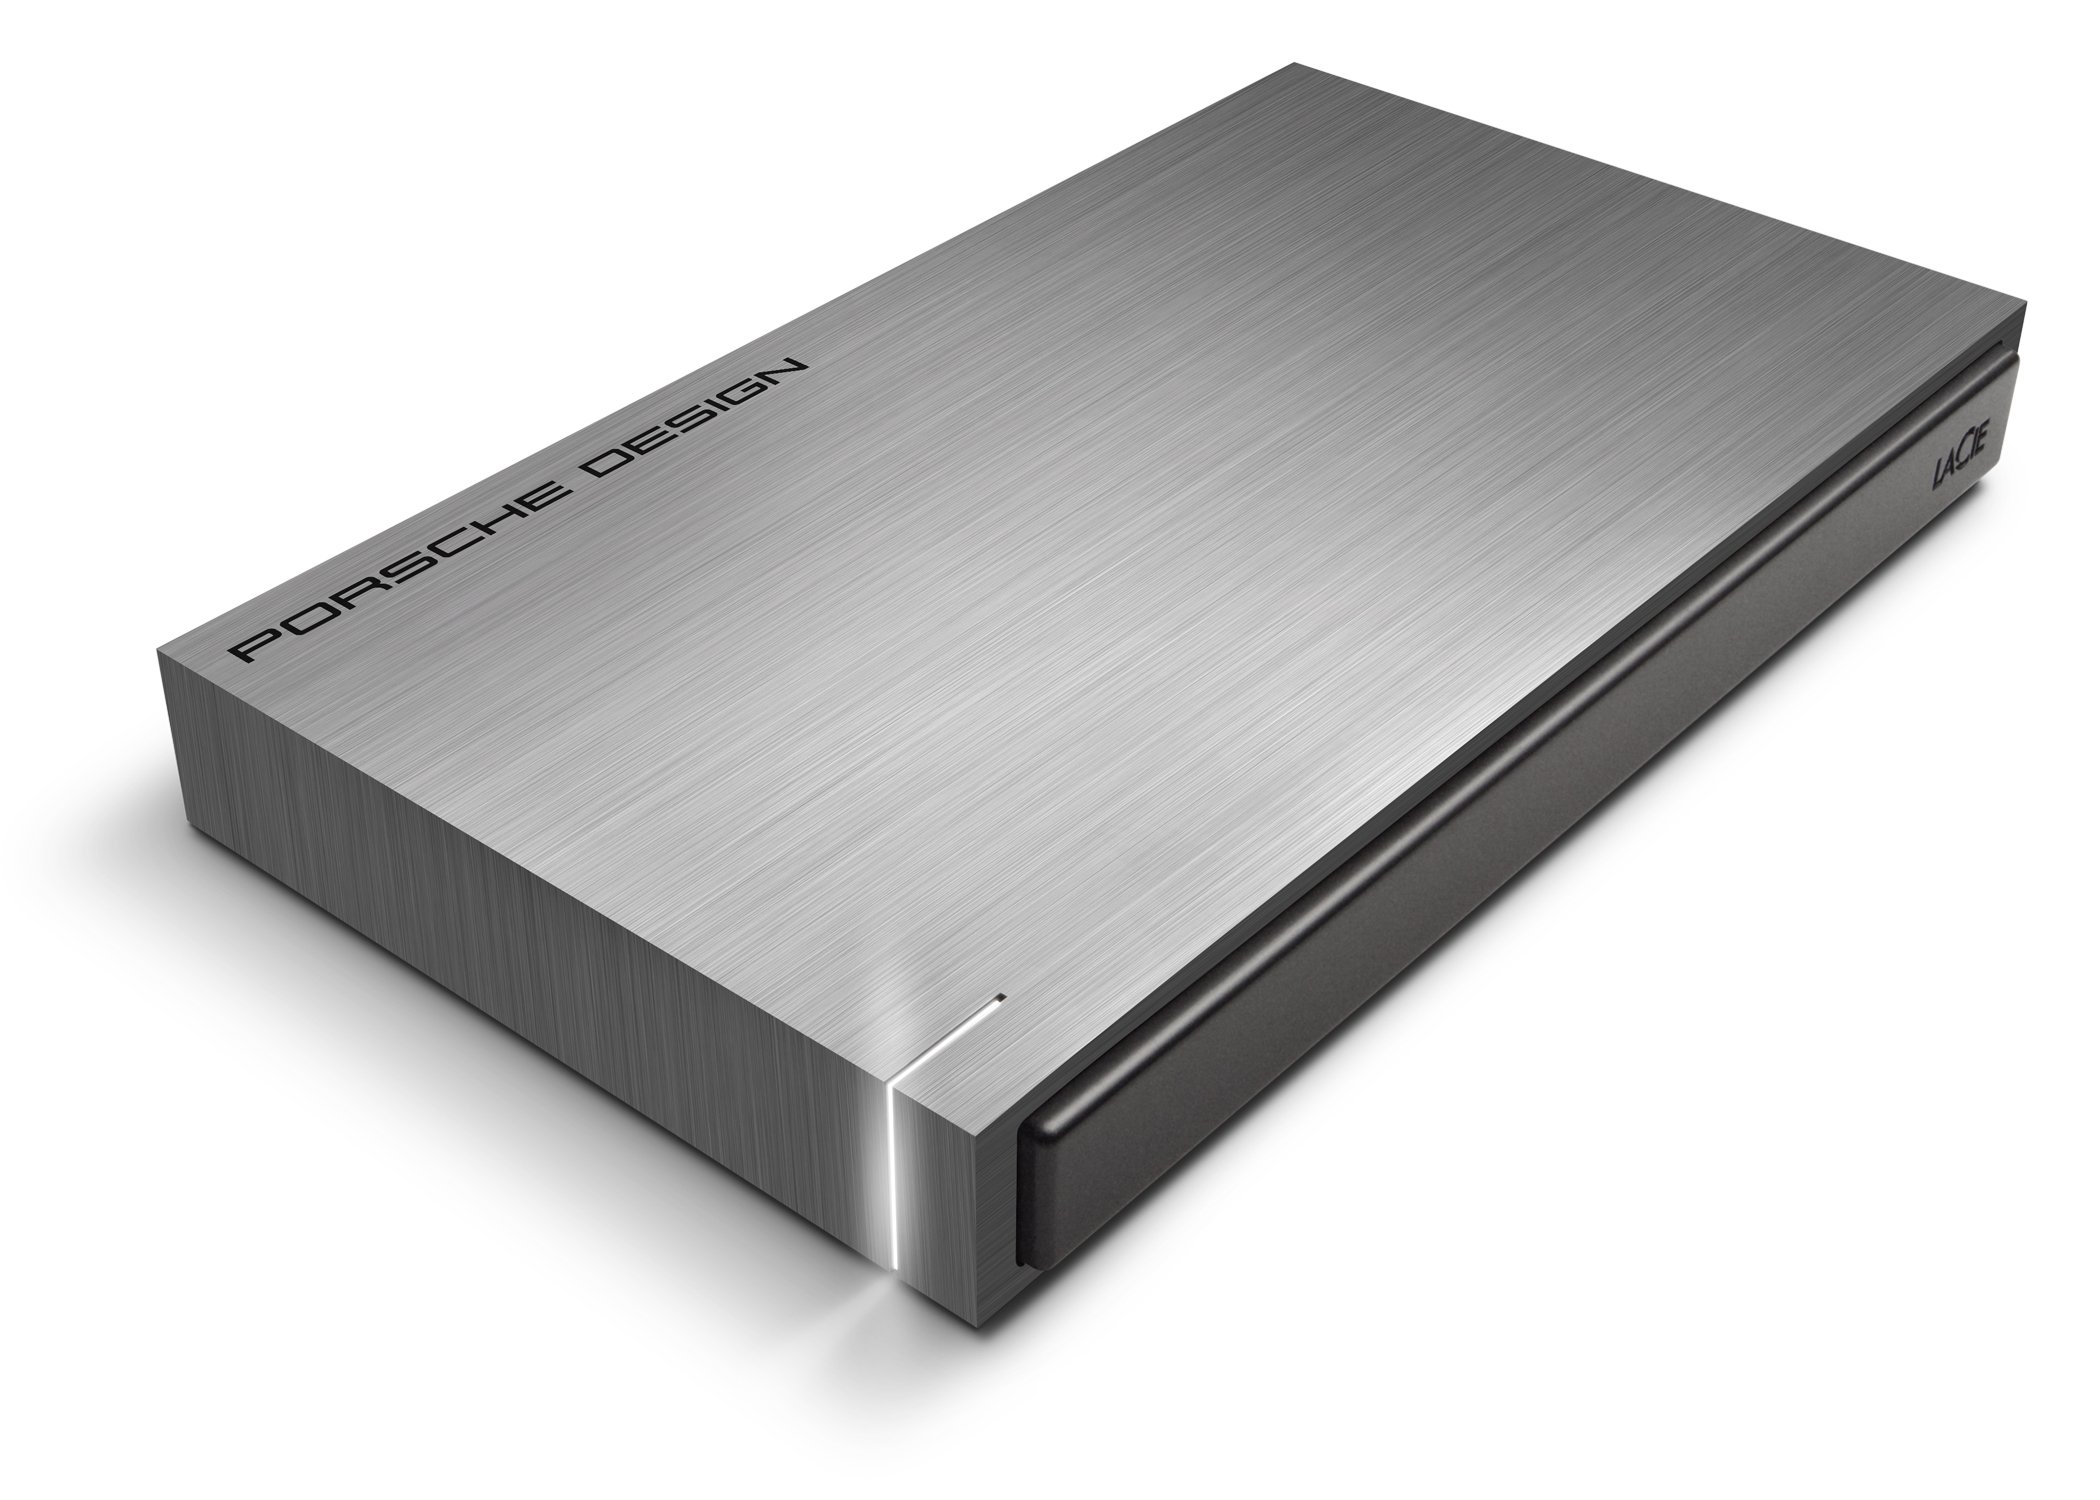 LaCie Porsche Design P'9220 2 TB USB 3.0 Portable External Hard Drive 9000459